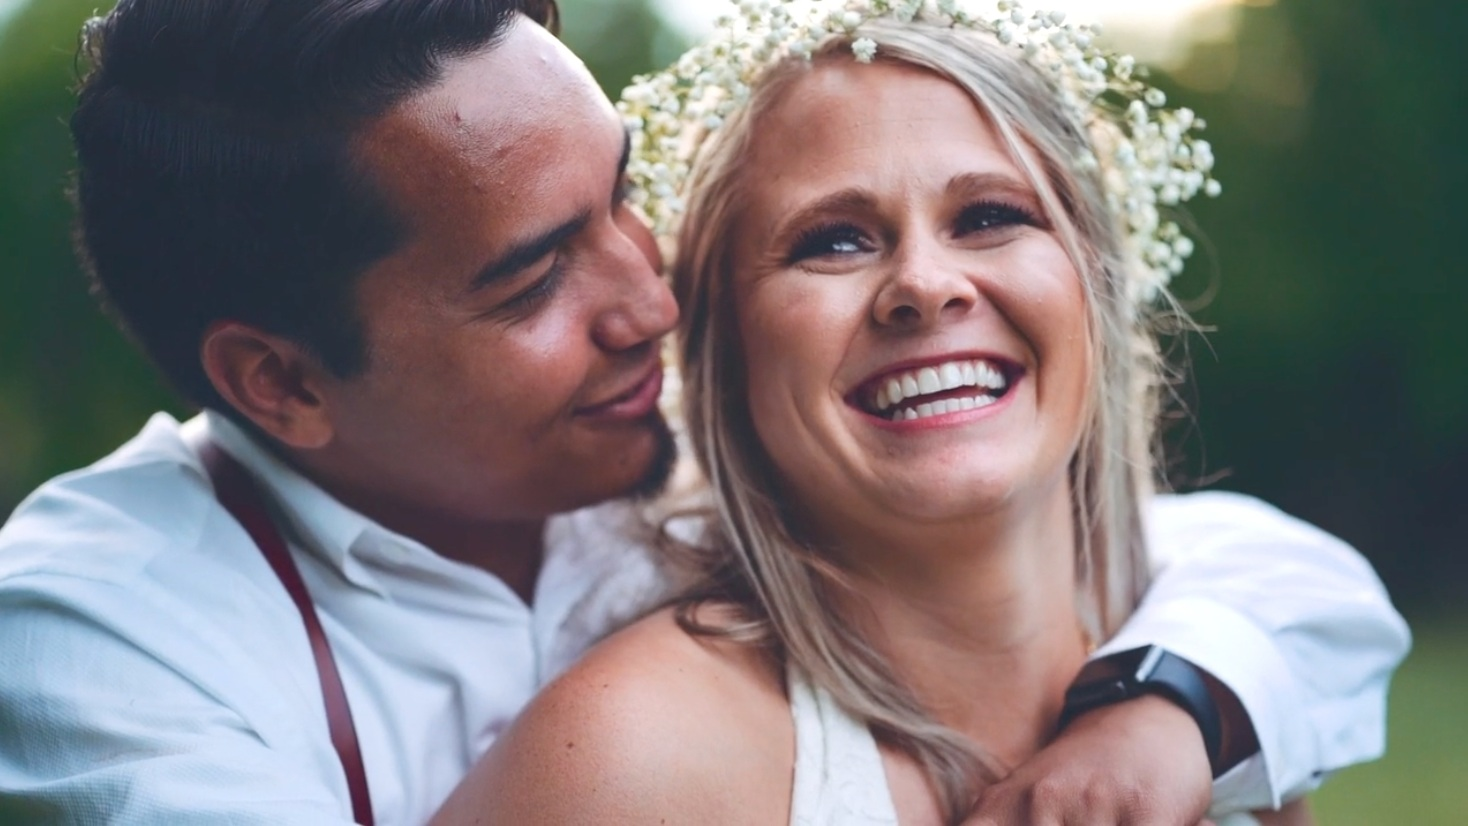 ADARA MEDIA - Megan Fridge is an ACU-grad who specializes in weddings (for the coolest people!). Her cool/matte look makes for the perfect touch of elegance to remember your big day.Films start at $1200.